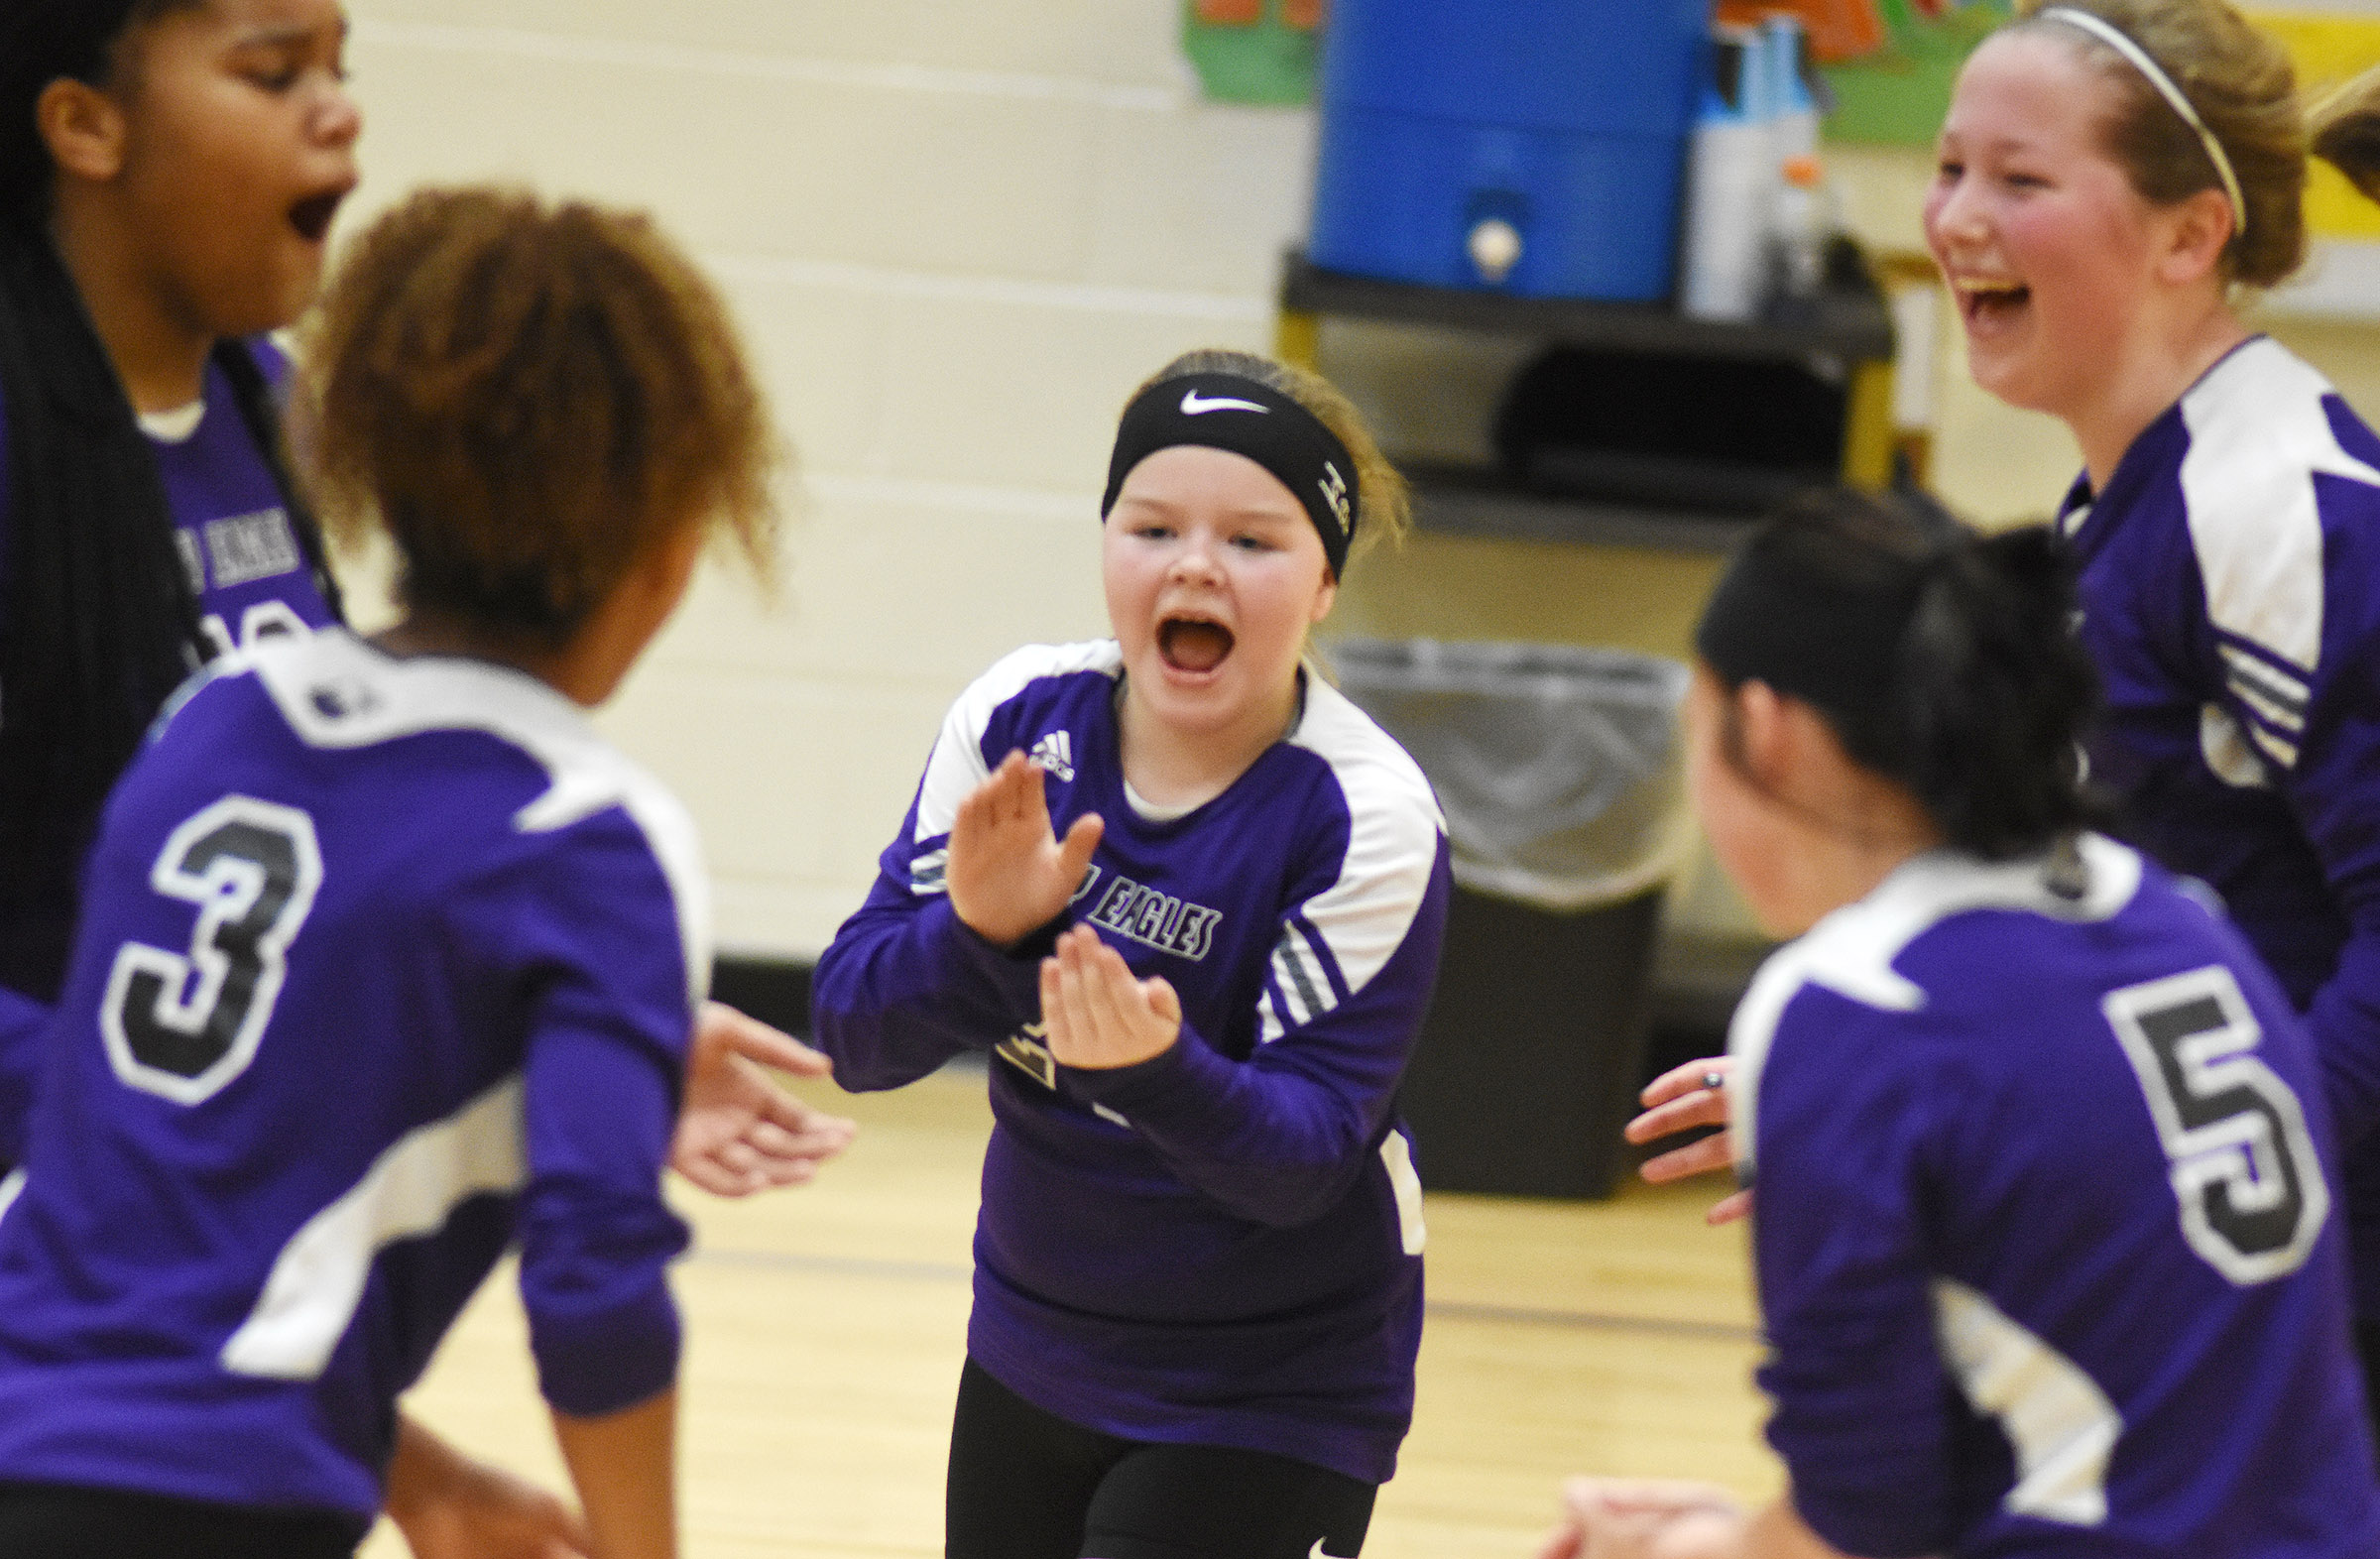 Campbellsville Elementary School fifth-grader Miley Hash cheers with her teammates.